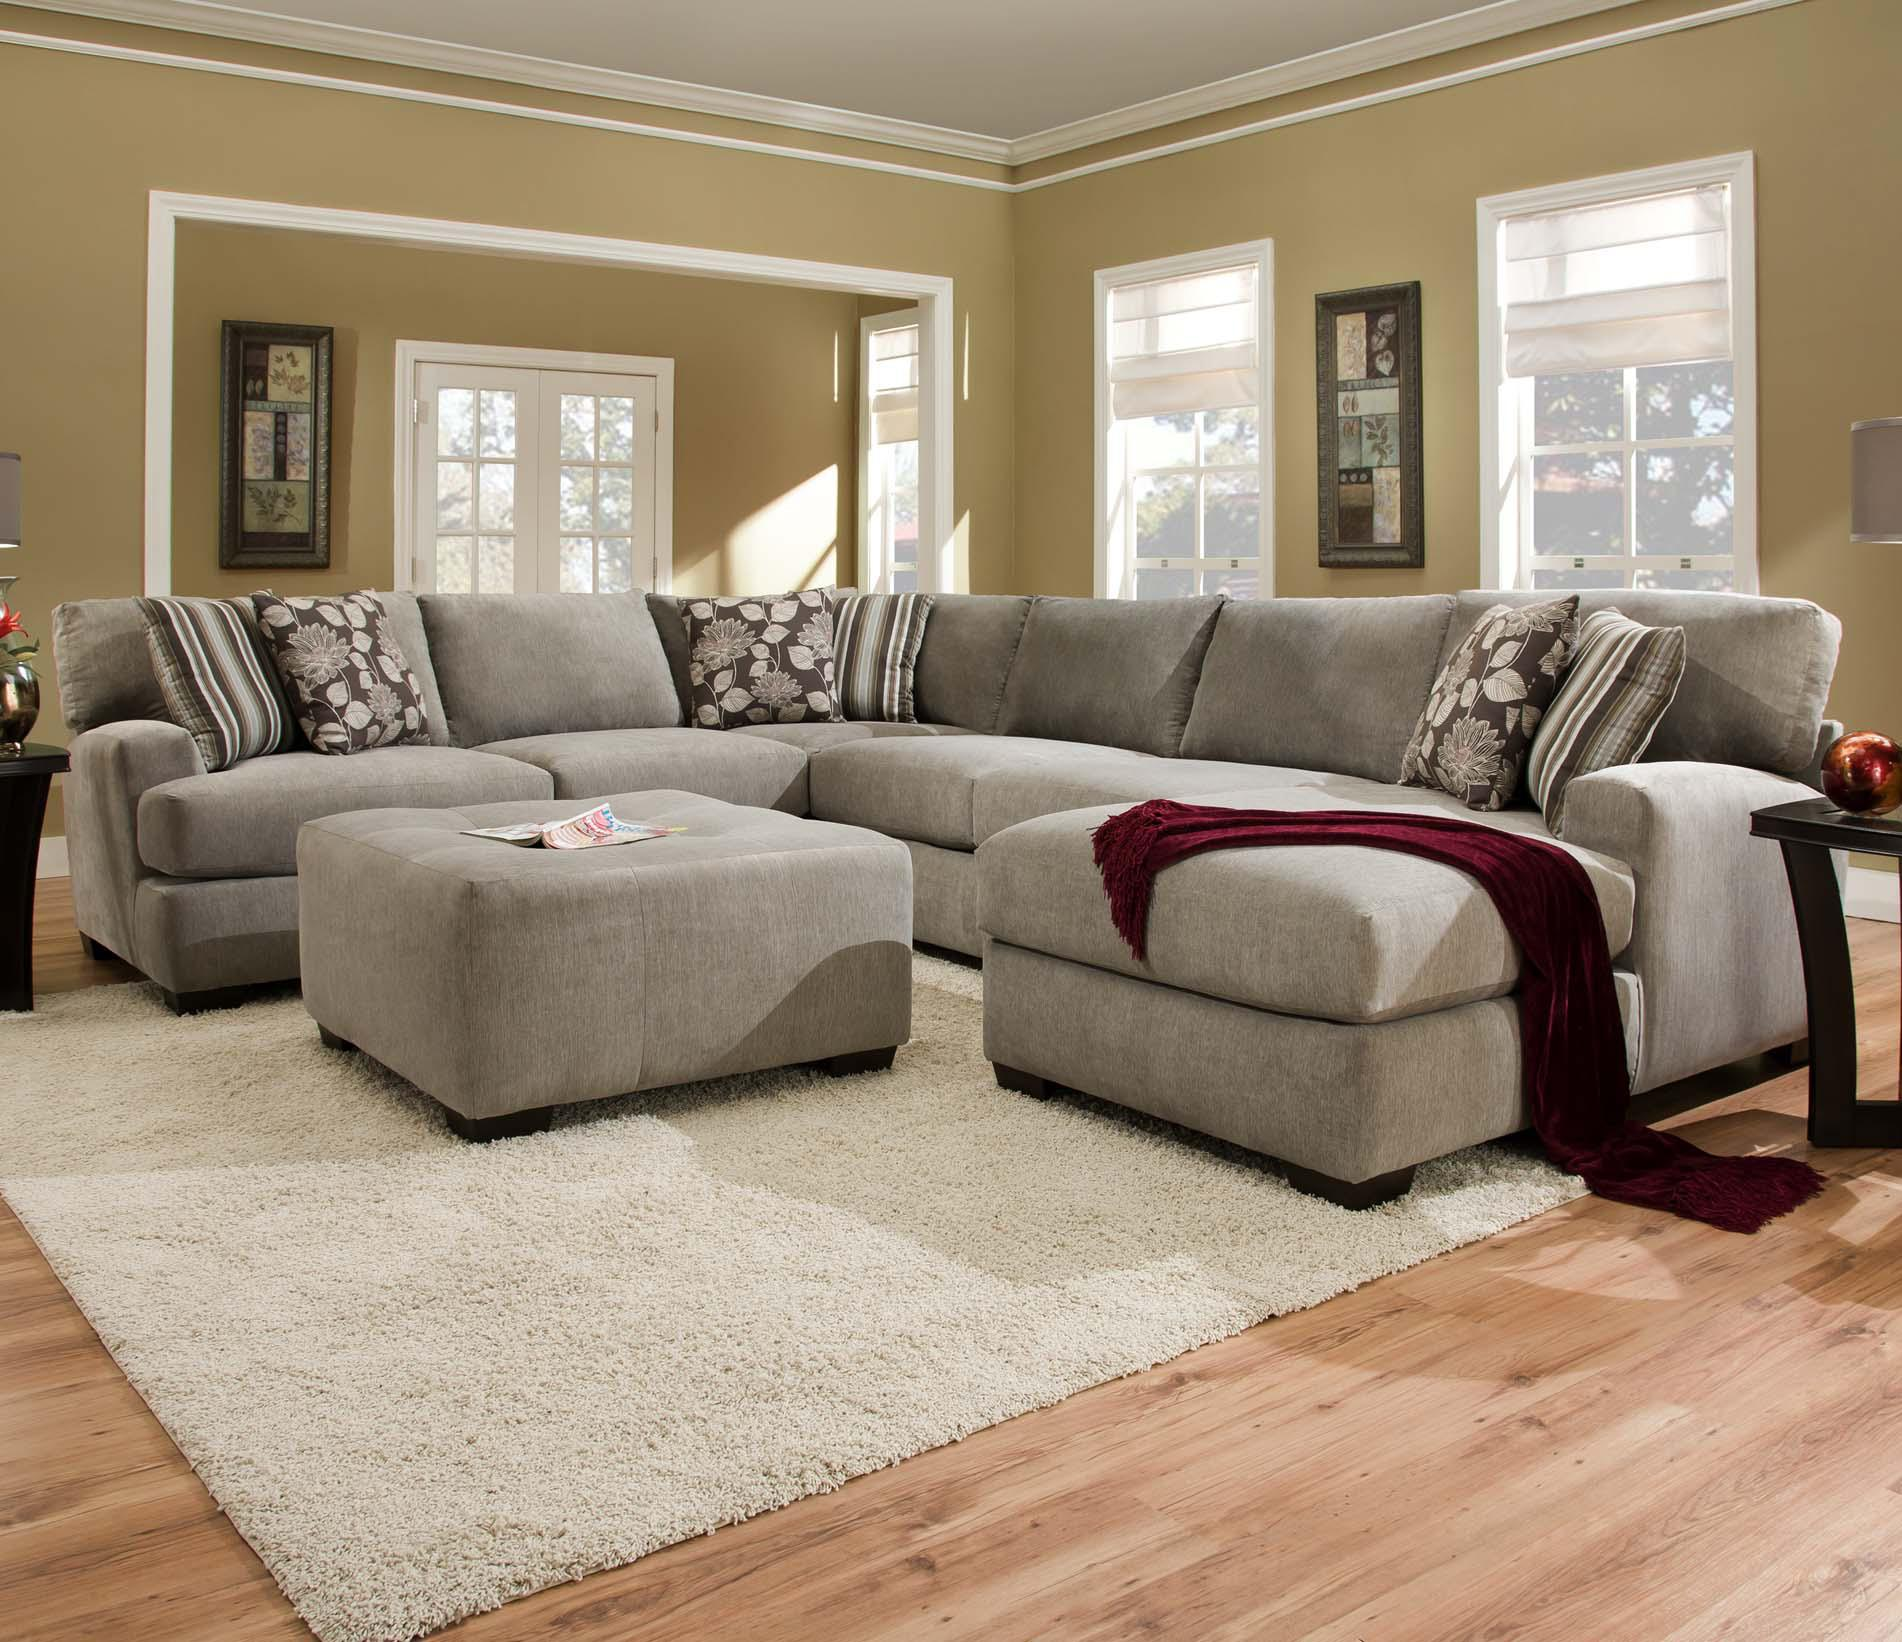 29A0 Sectional Sofa by Corinthian at Story & Lee Furniture